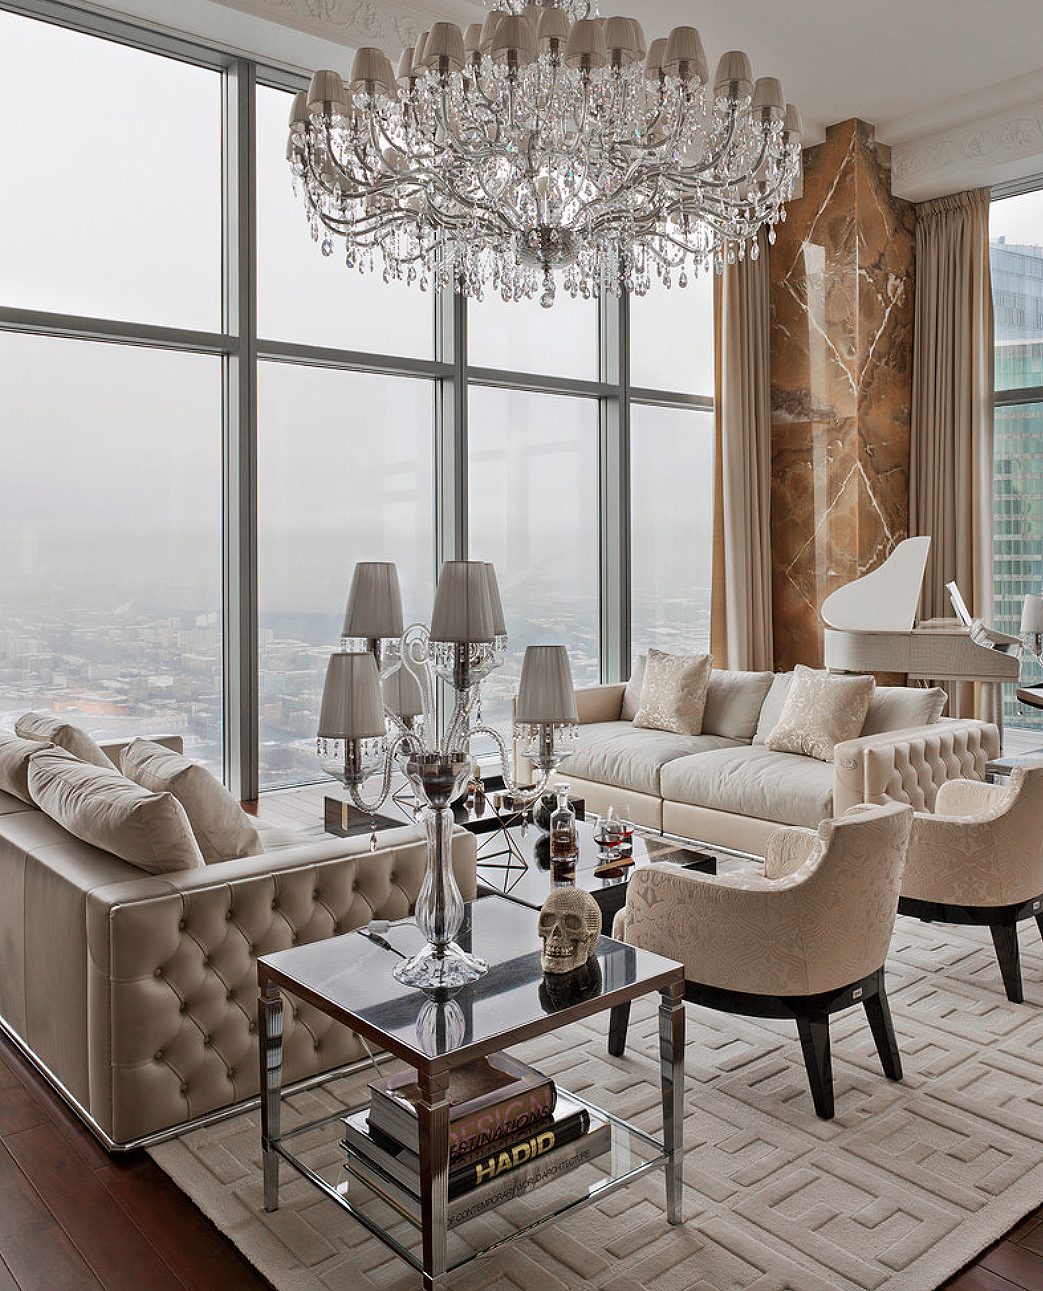 Gorgeous Luxury Glam Style Beige Living Room Decor With Beige Velvet Tufted Sofas And Crystal D In 2020 Beige Living Room Decor Glam Interior Design Luxury Living Room #velvet #living #room #ideas